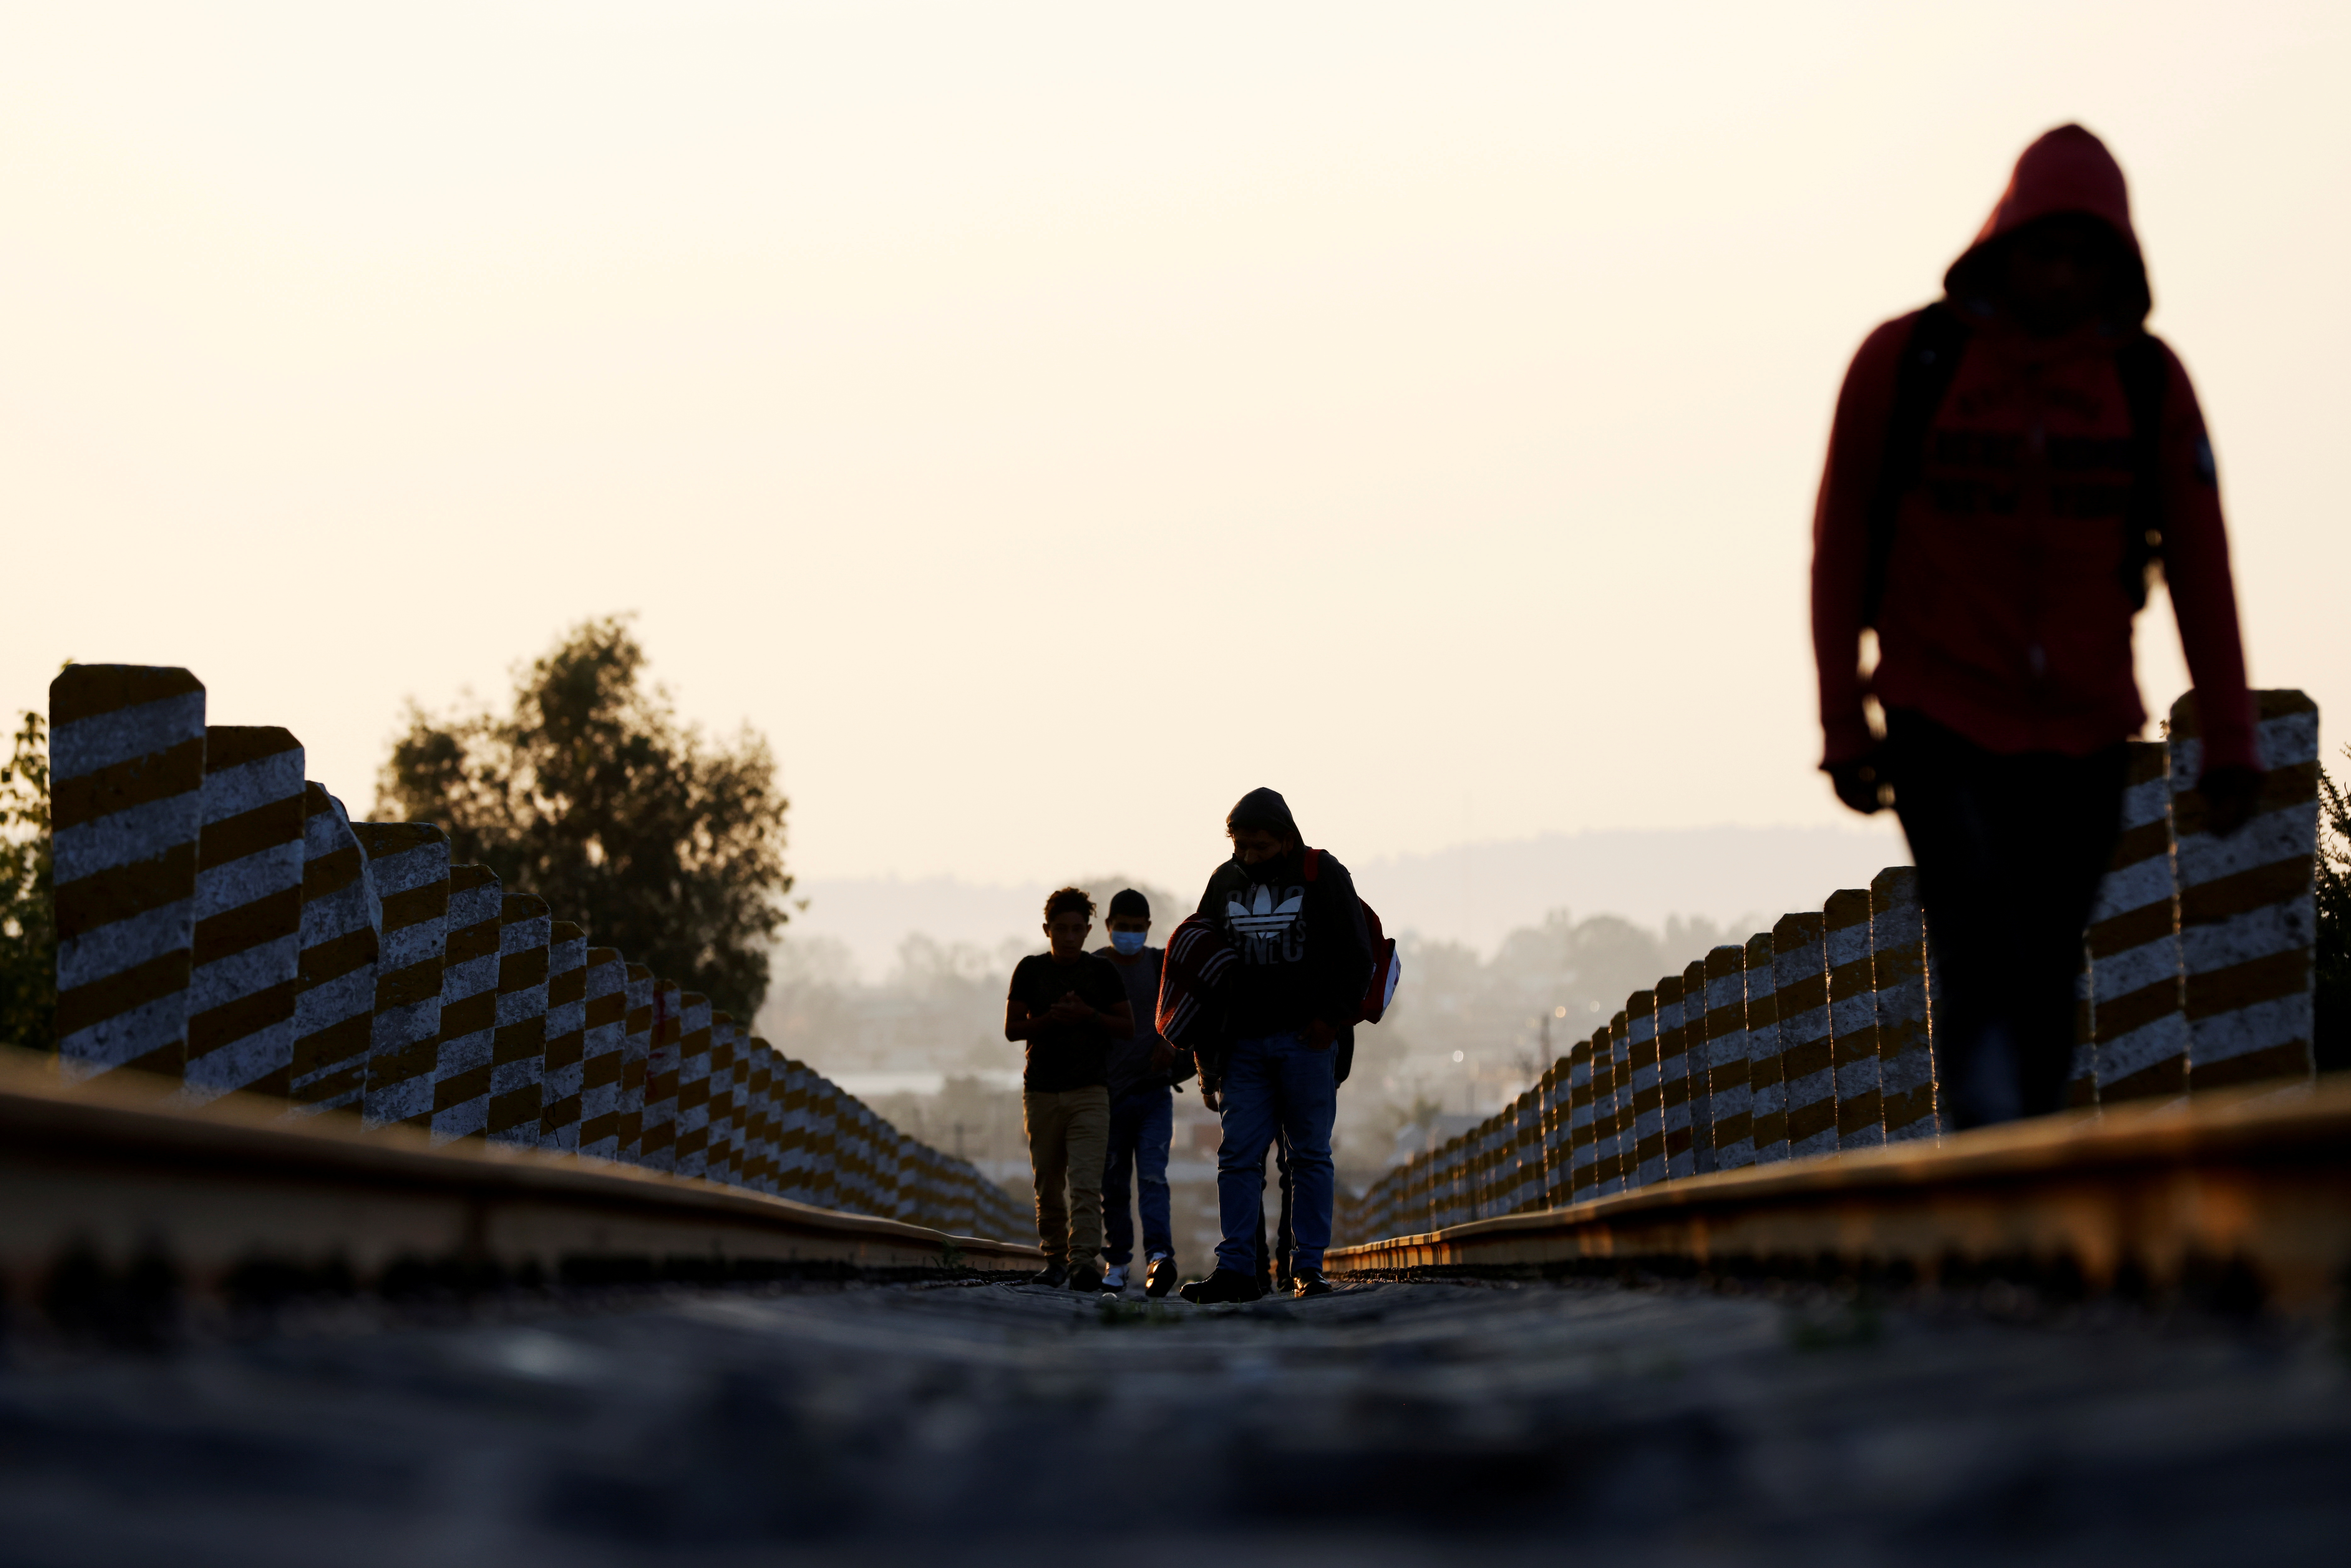 Central American migrants walk on the train track near the